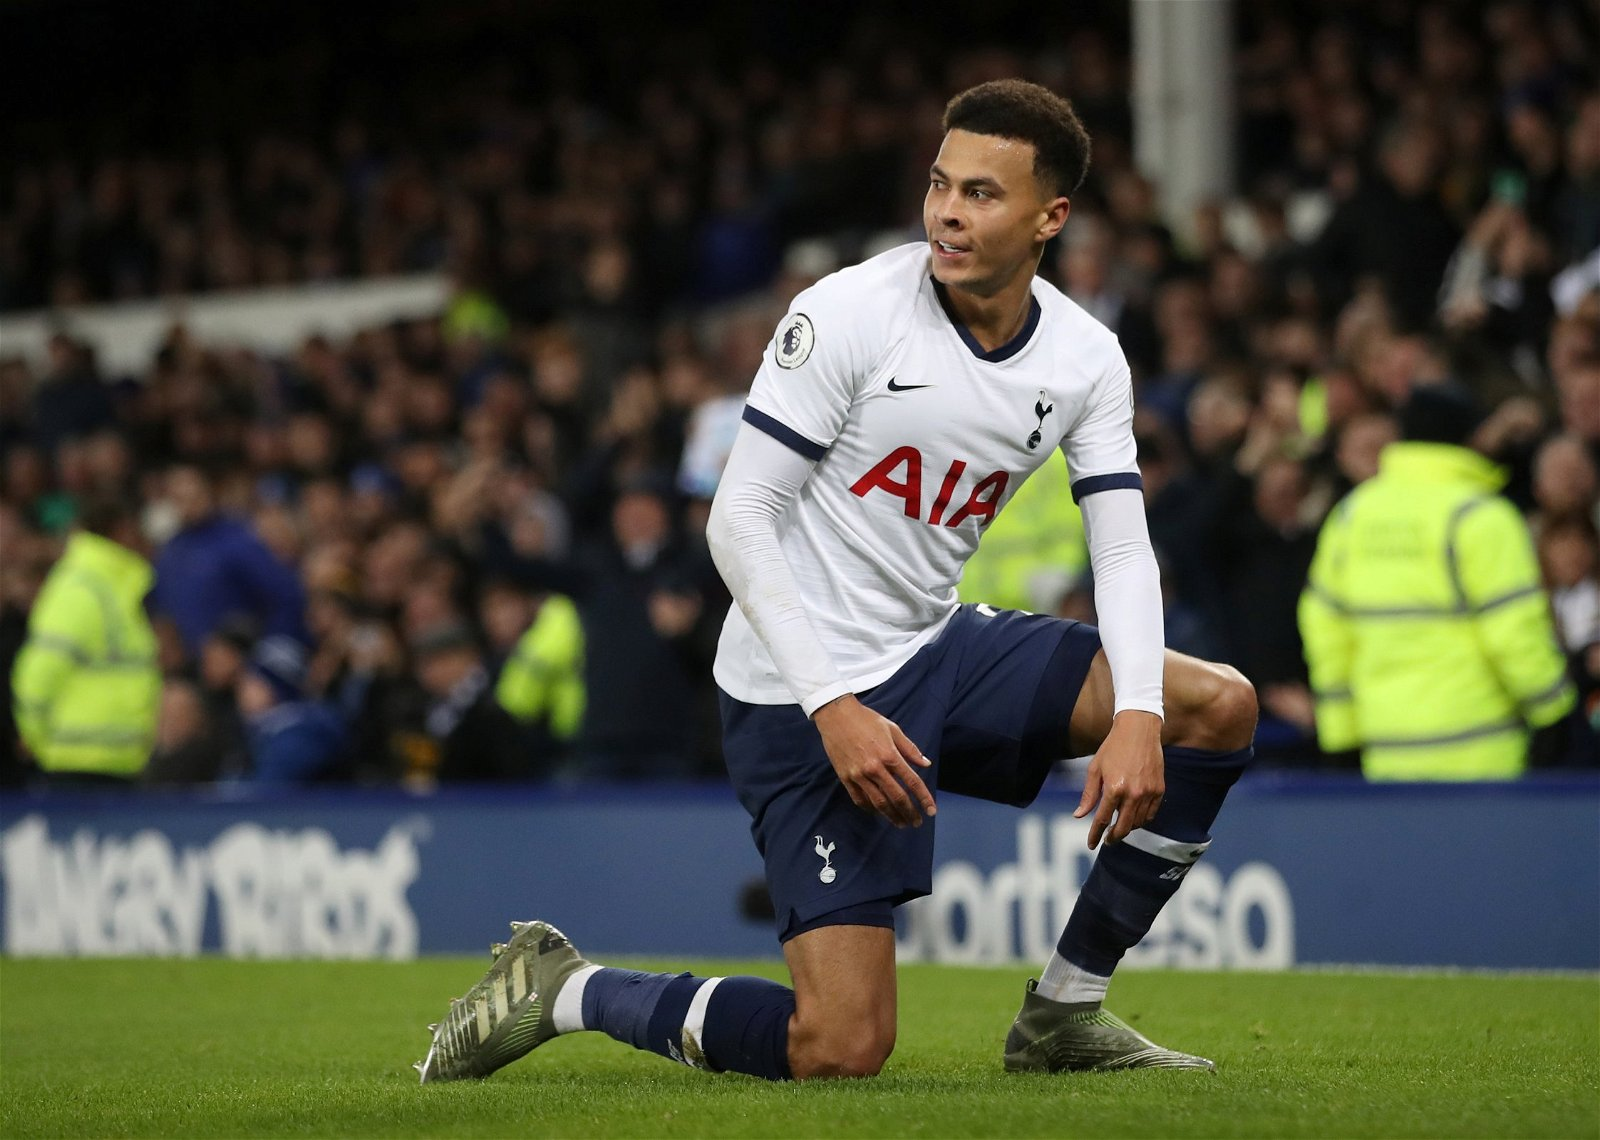 Tottenham Hotspurs Dele Alli celebrates scoring their first goal v Everton - Three Spurs men set to benefit most from Mourinho appointment - opinion